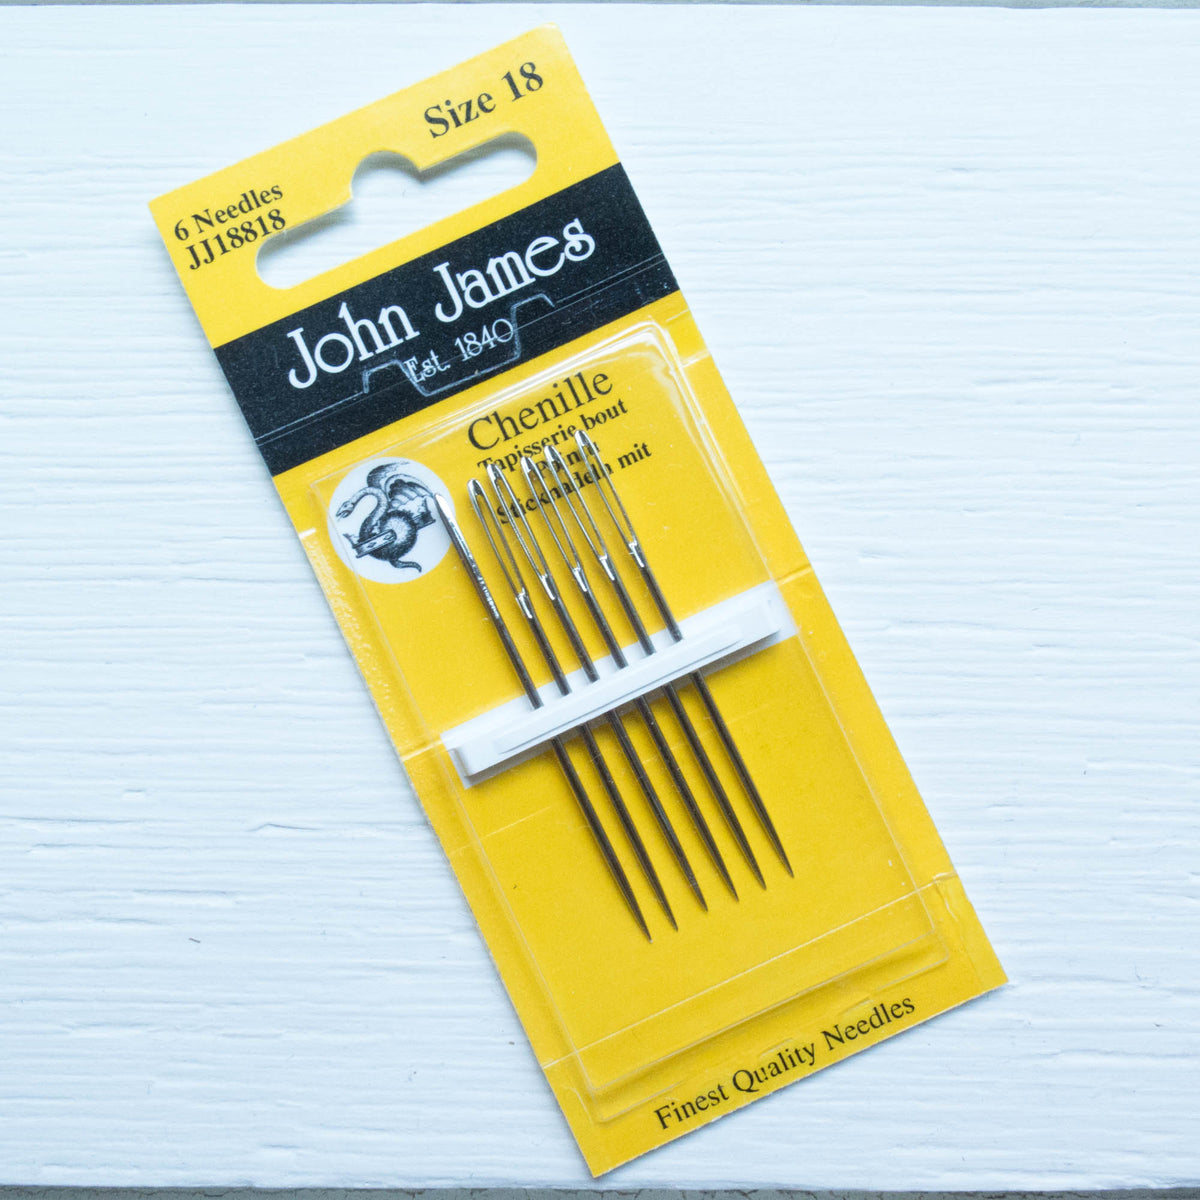 John James Chenille Needles - Size 18 Needles - Snuggly Monkey